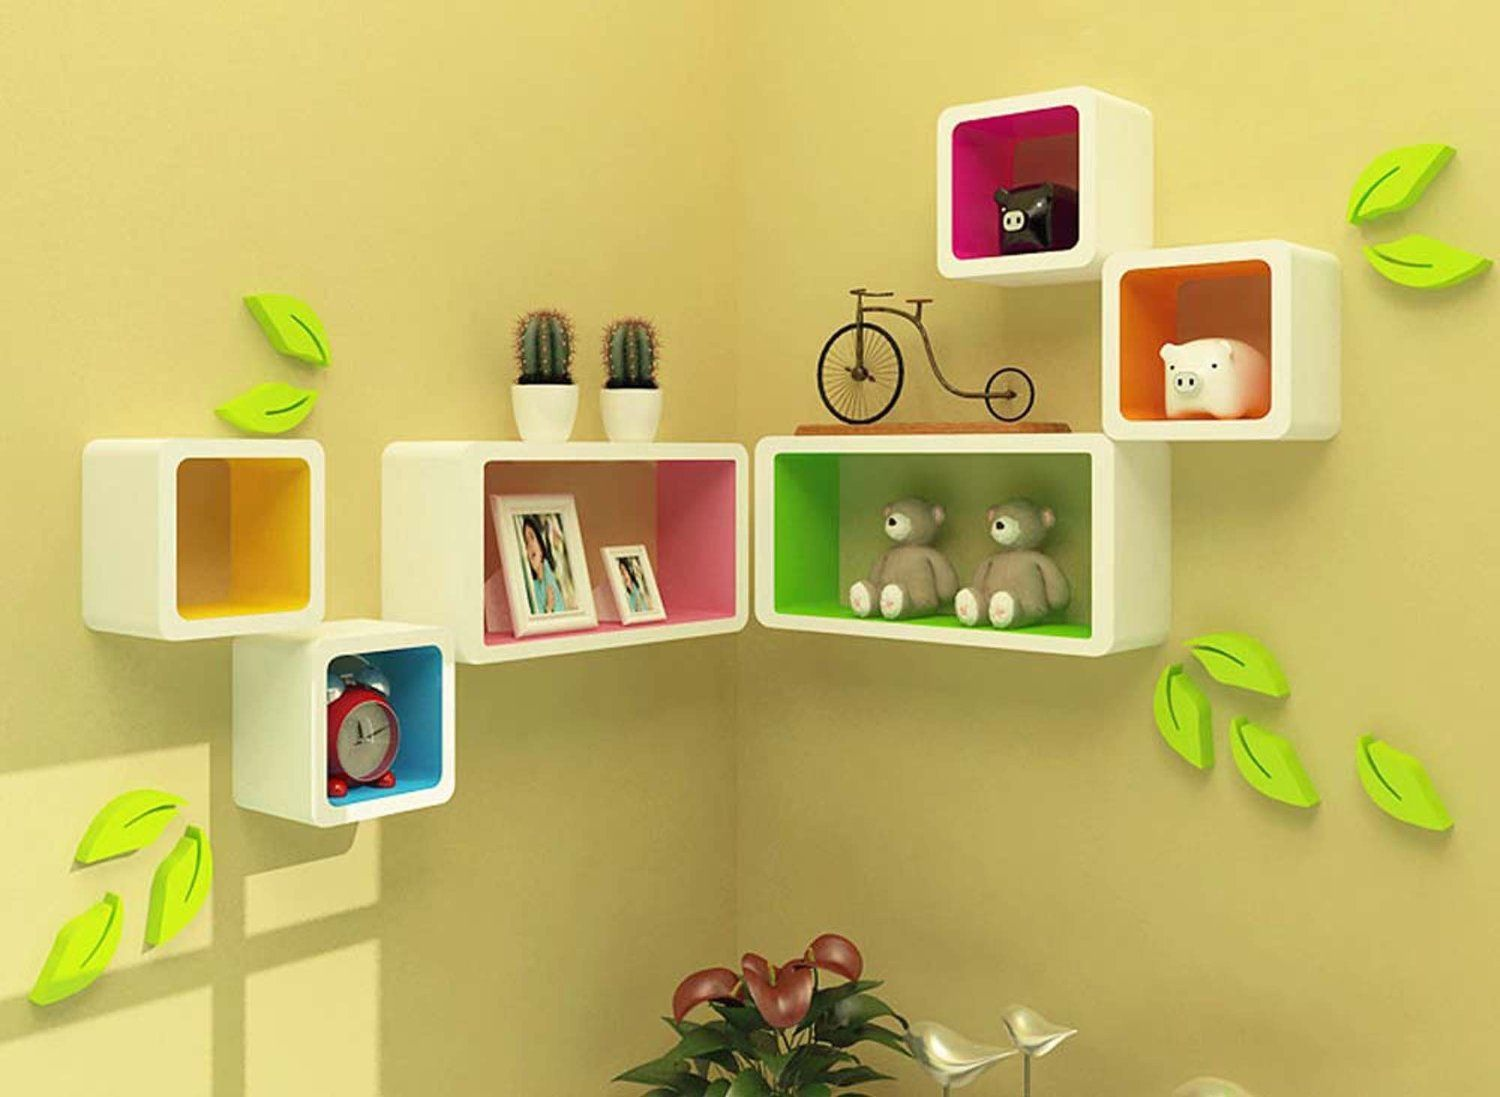 ZJchao Squares Wall Shelves Rounded Corner- Decorative Display ...